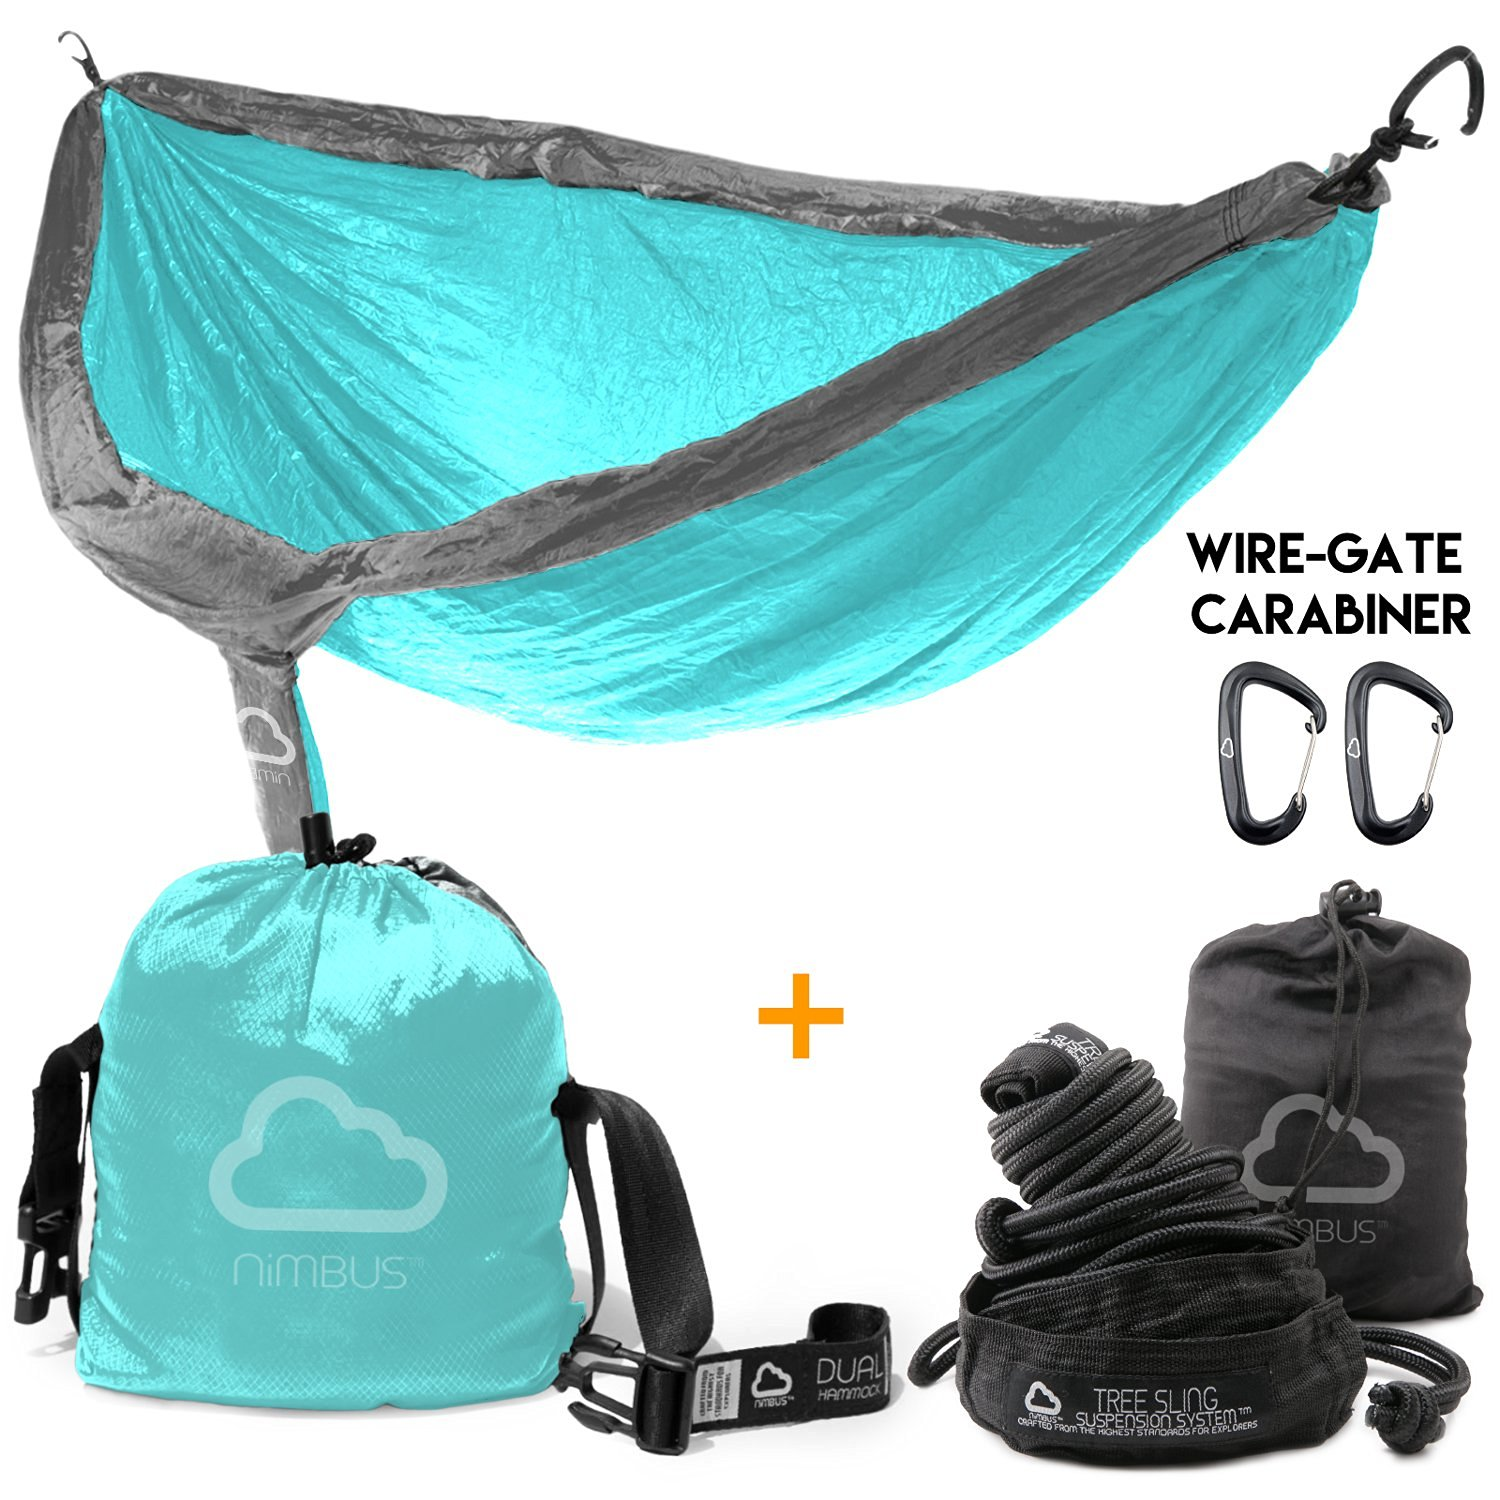 HOLIDAY SALE!!! Ends Today! - Double Outdoor Camping Nylon Hammock with Suspension Kit & Premium Carabiner [Complete Hammock Set] - Designed in USA | Top Rated | Built to Last | by Nimbus Hammock